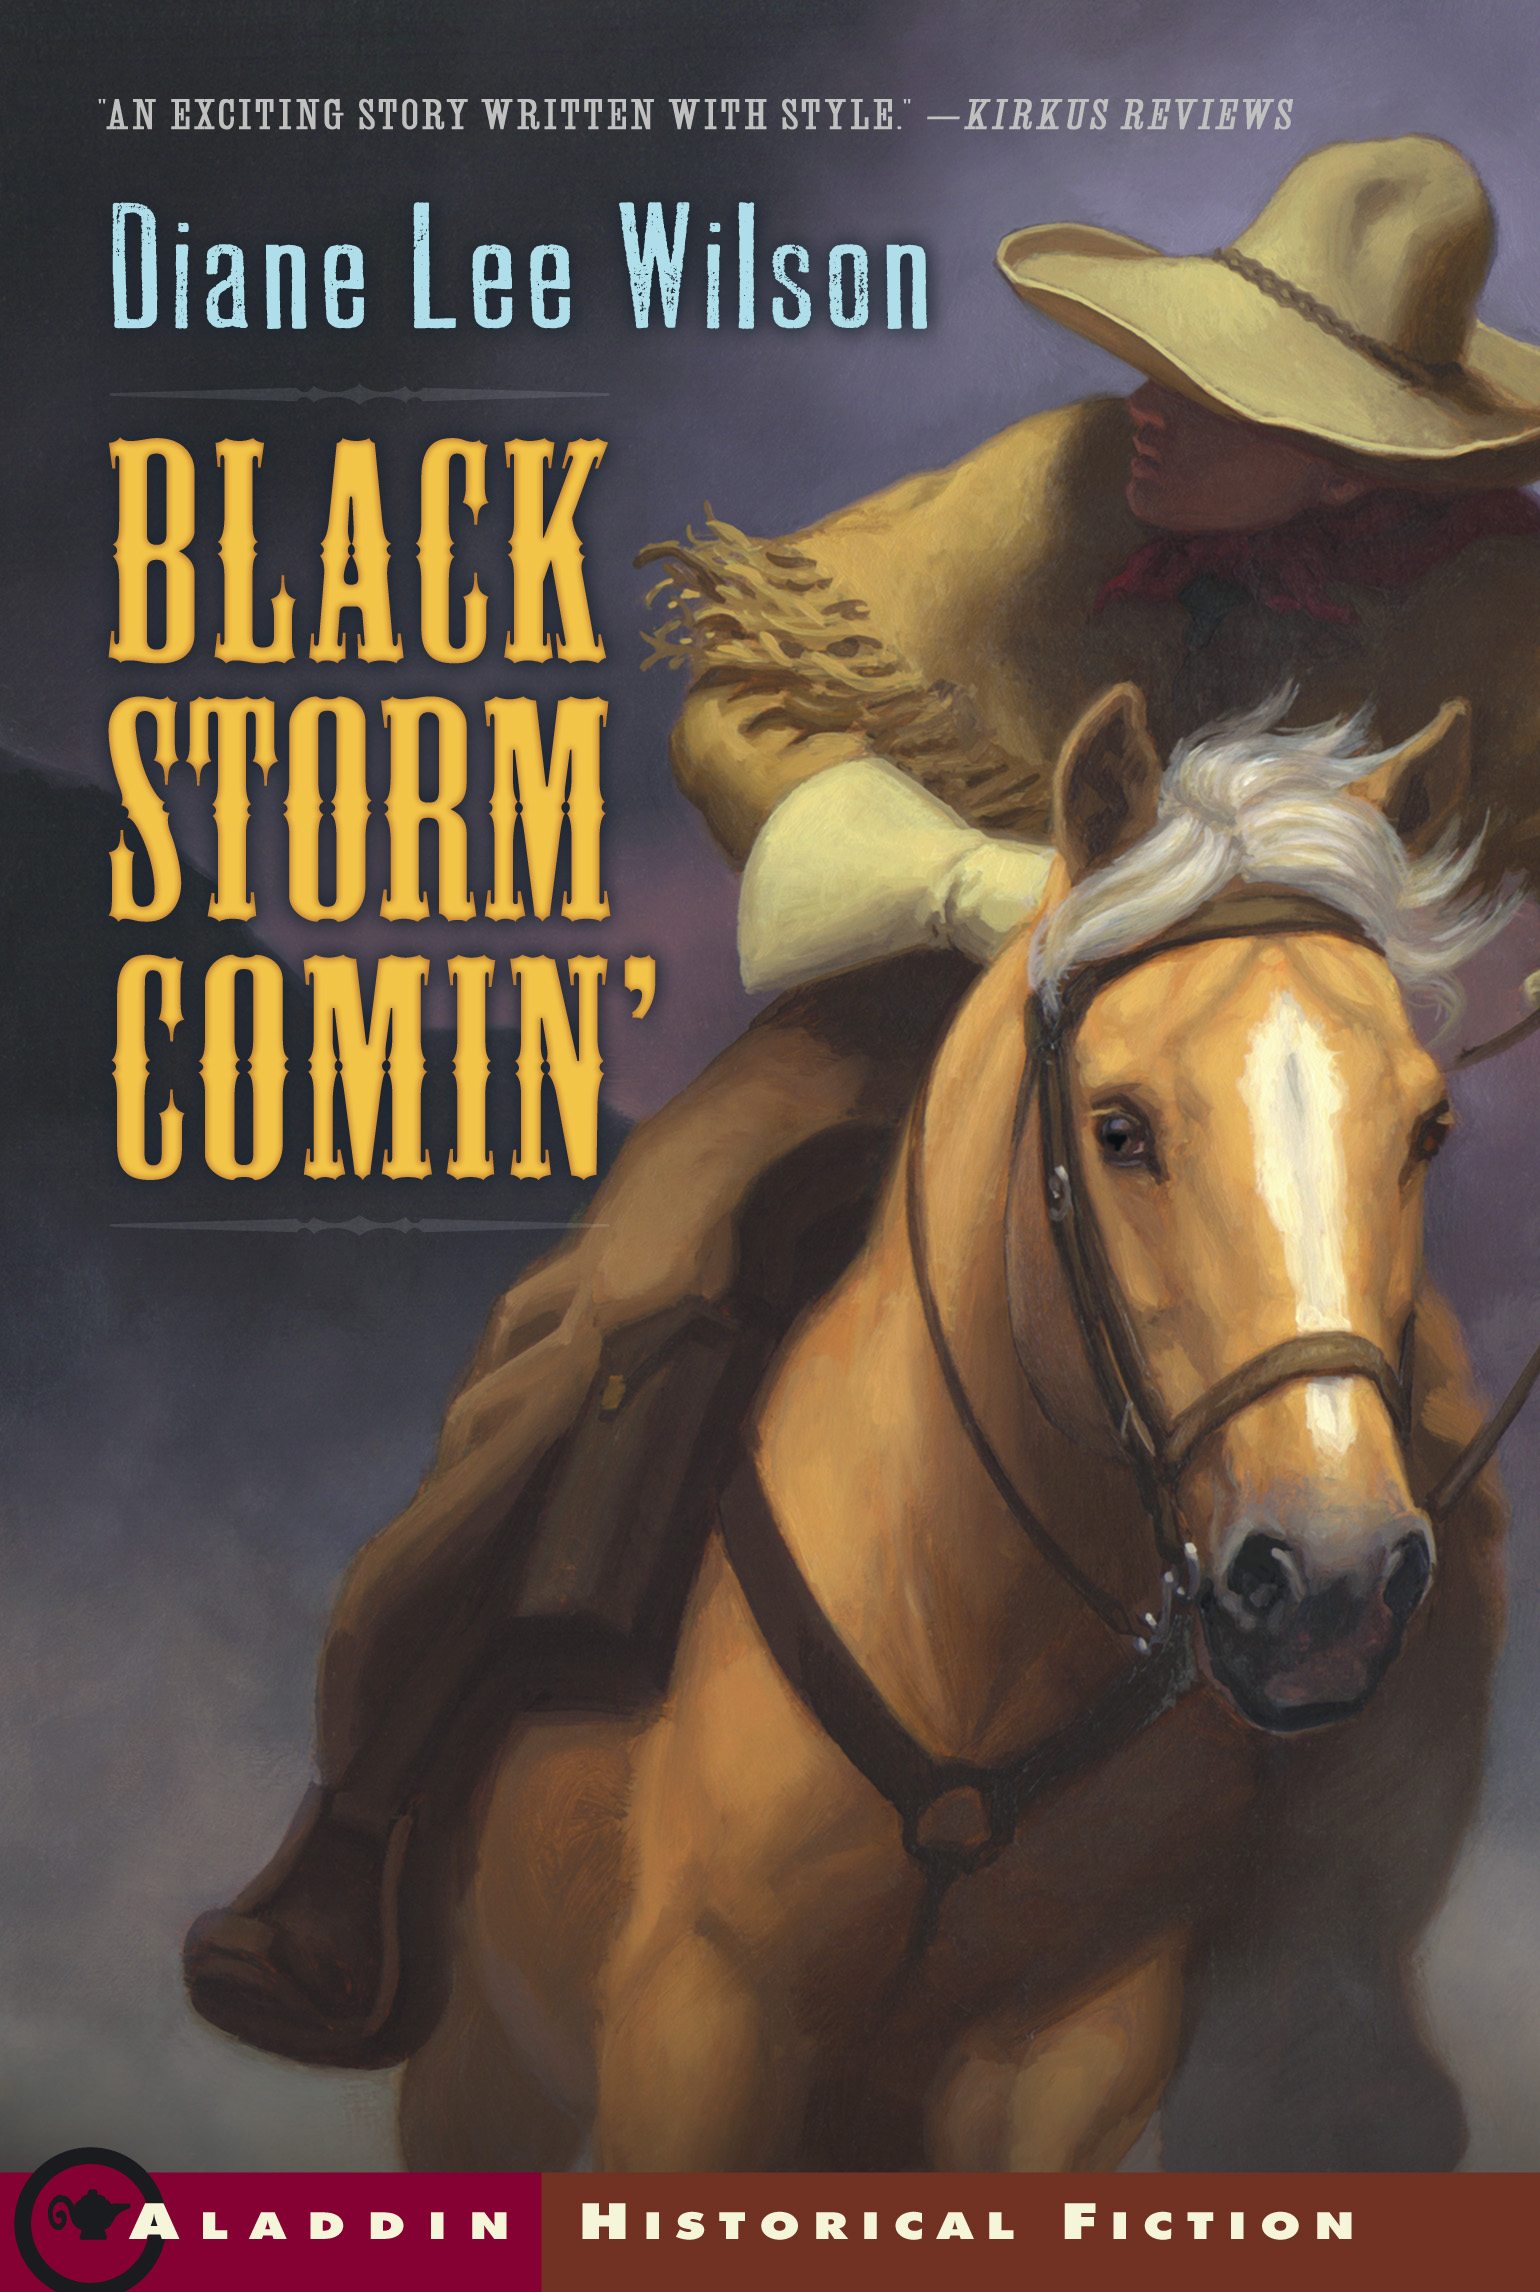 Book Cover Image (jpg): Black Storm Comin'